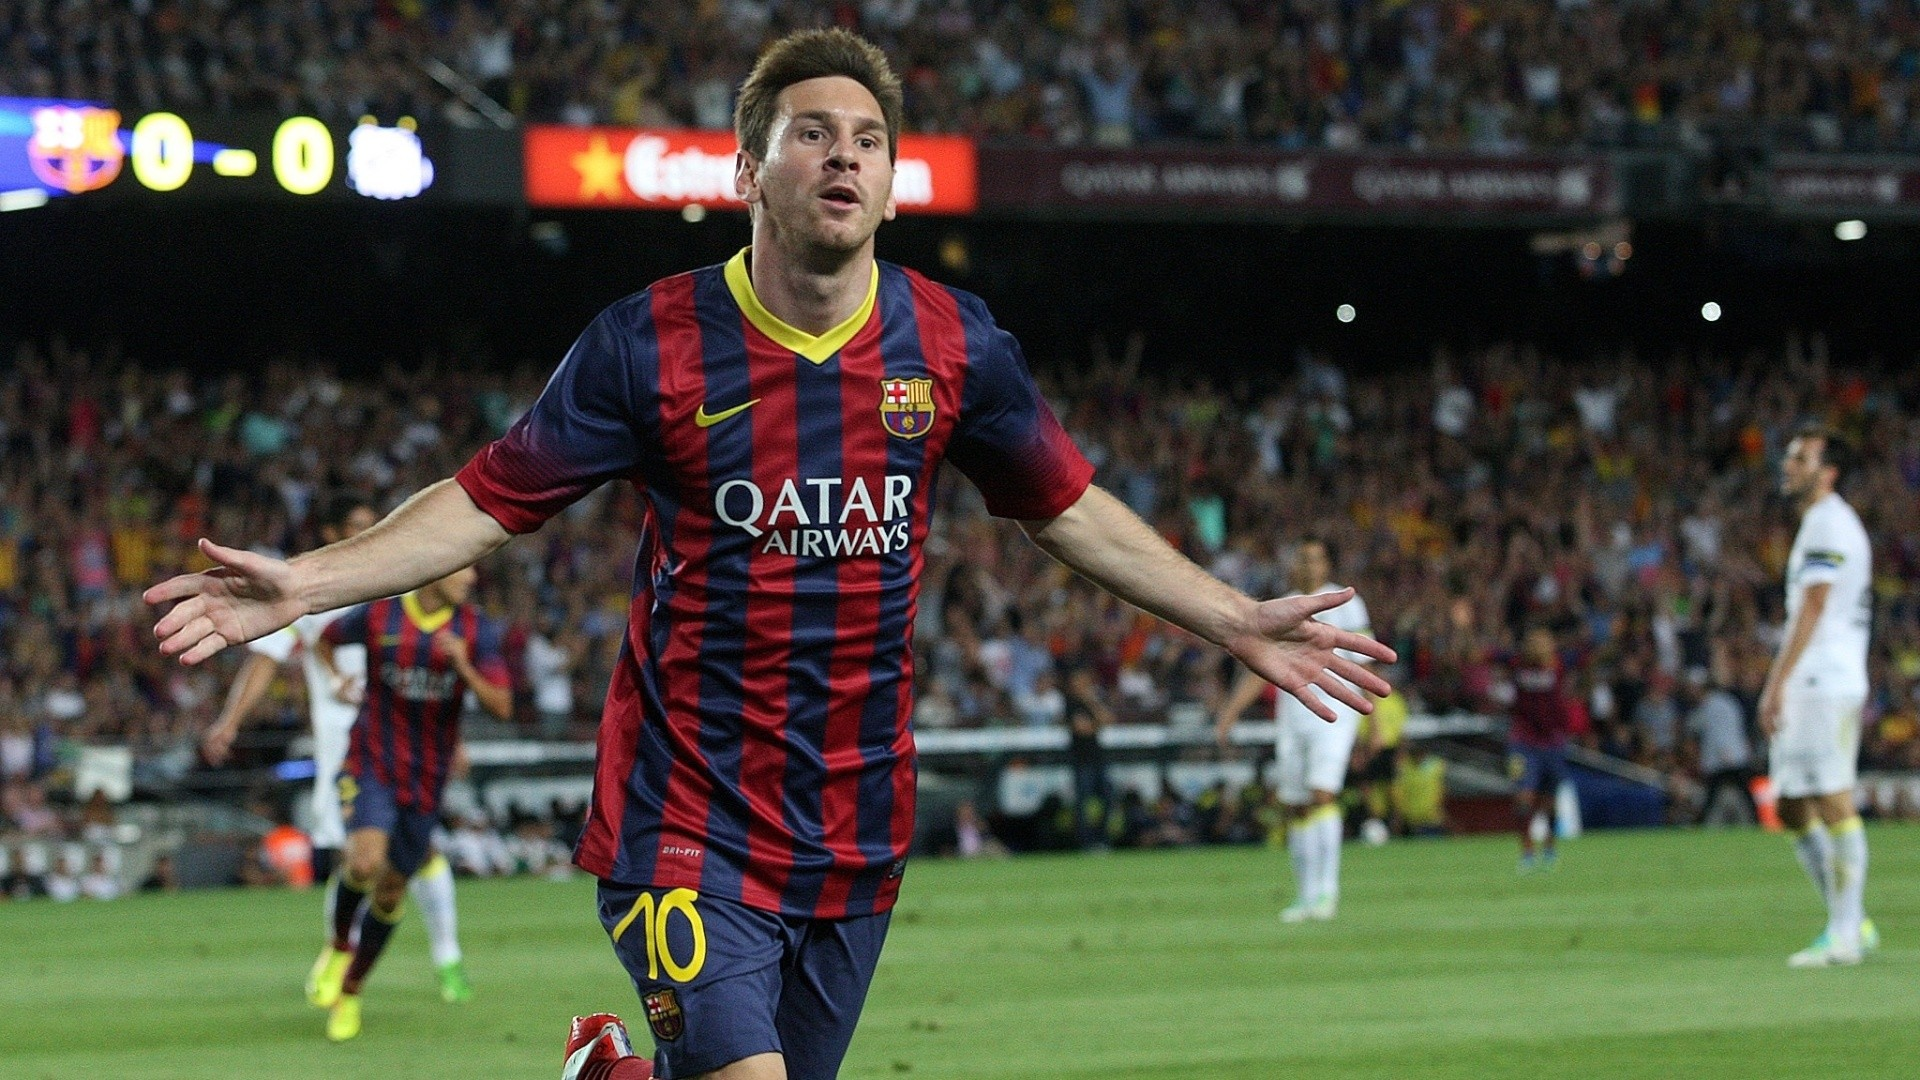 Lionel-Messi-hd-Wallpaper-2014-WideScreen